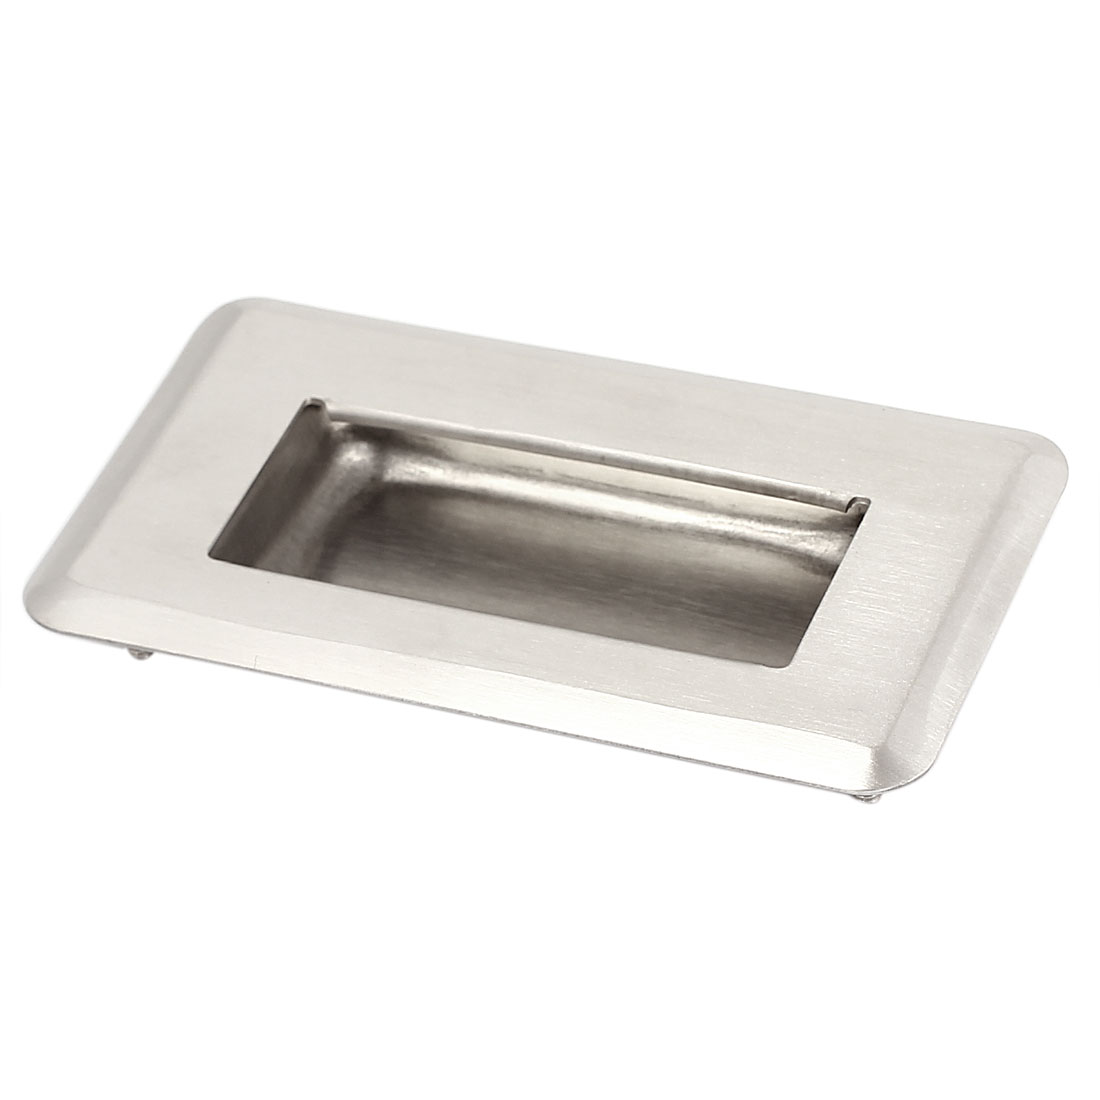 110mmx63mm Stainless Steel Recessed Flush Pull Sliding Door Cabinet Handle